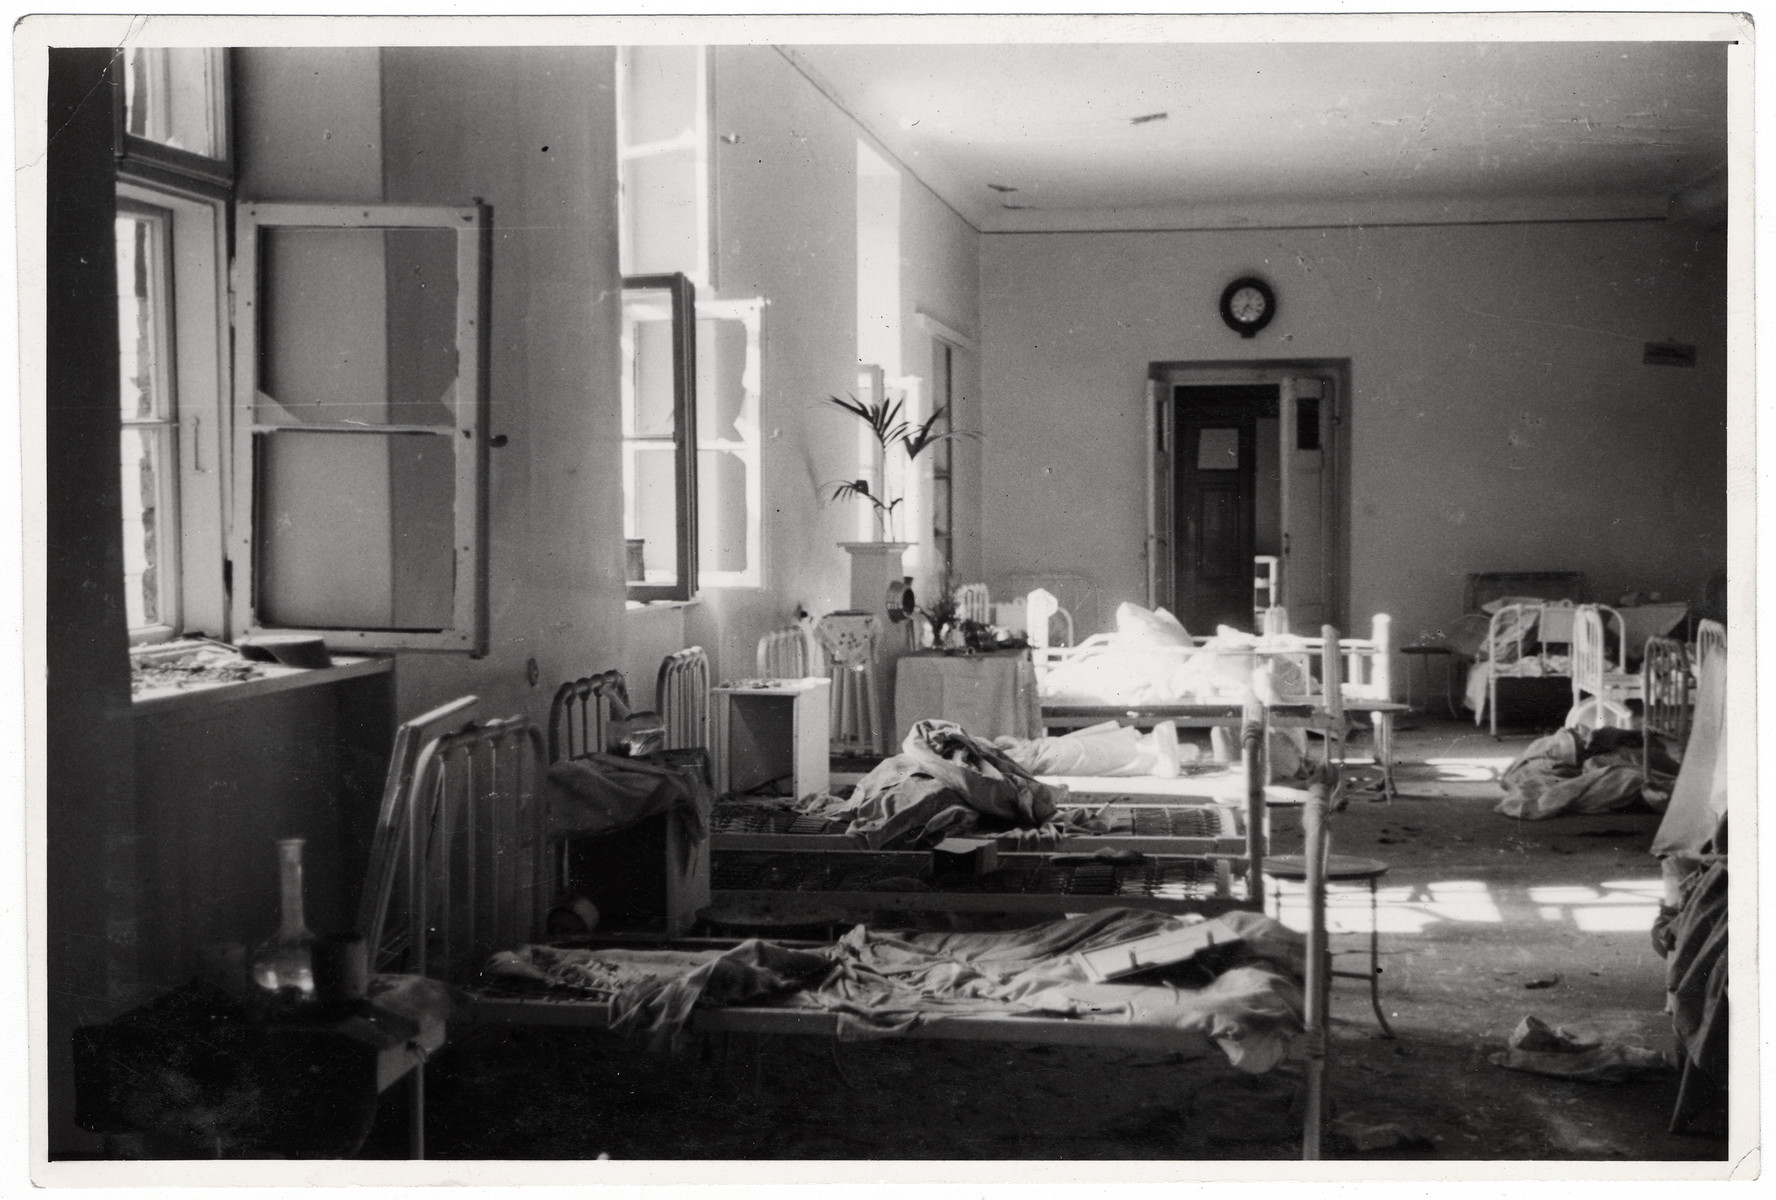 Interior view of a ward in the Catholic Hospital of the Transfiguration (one of Warsaw's largest hospitals) that is completely destroyed.